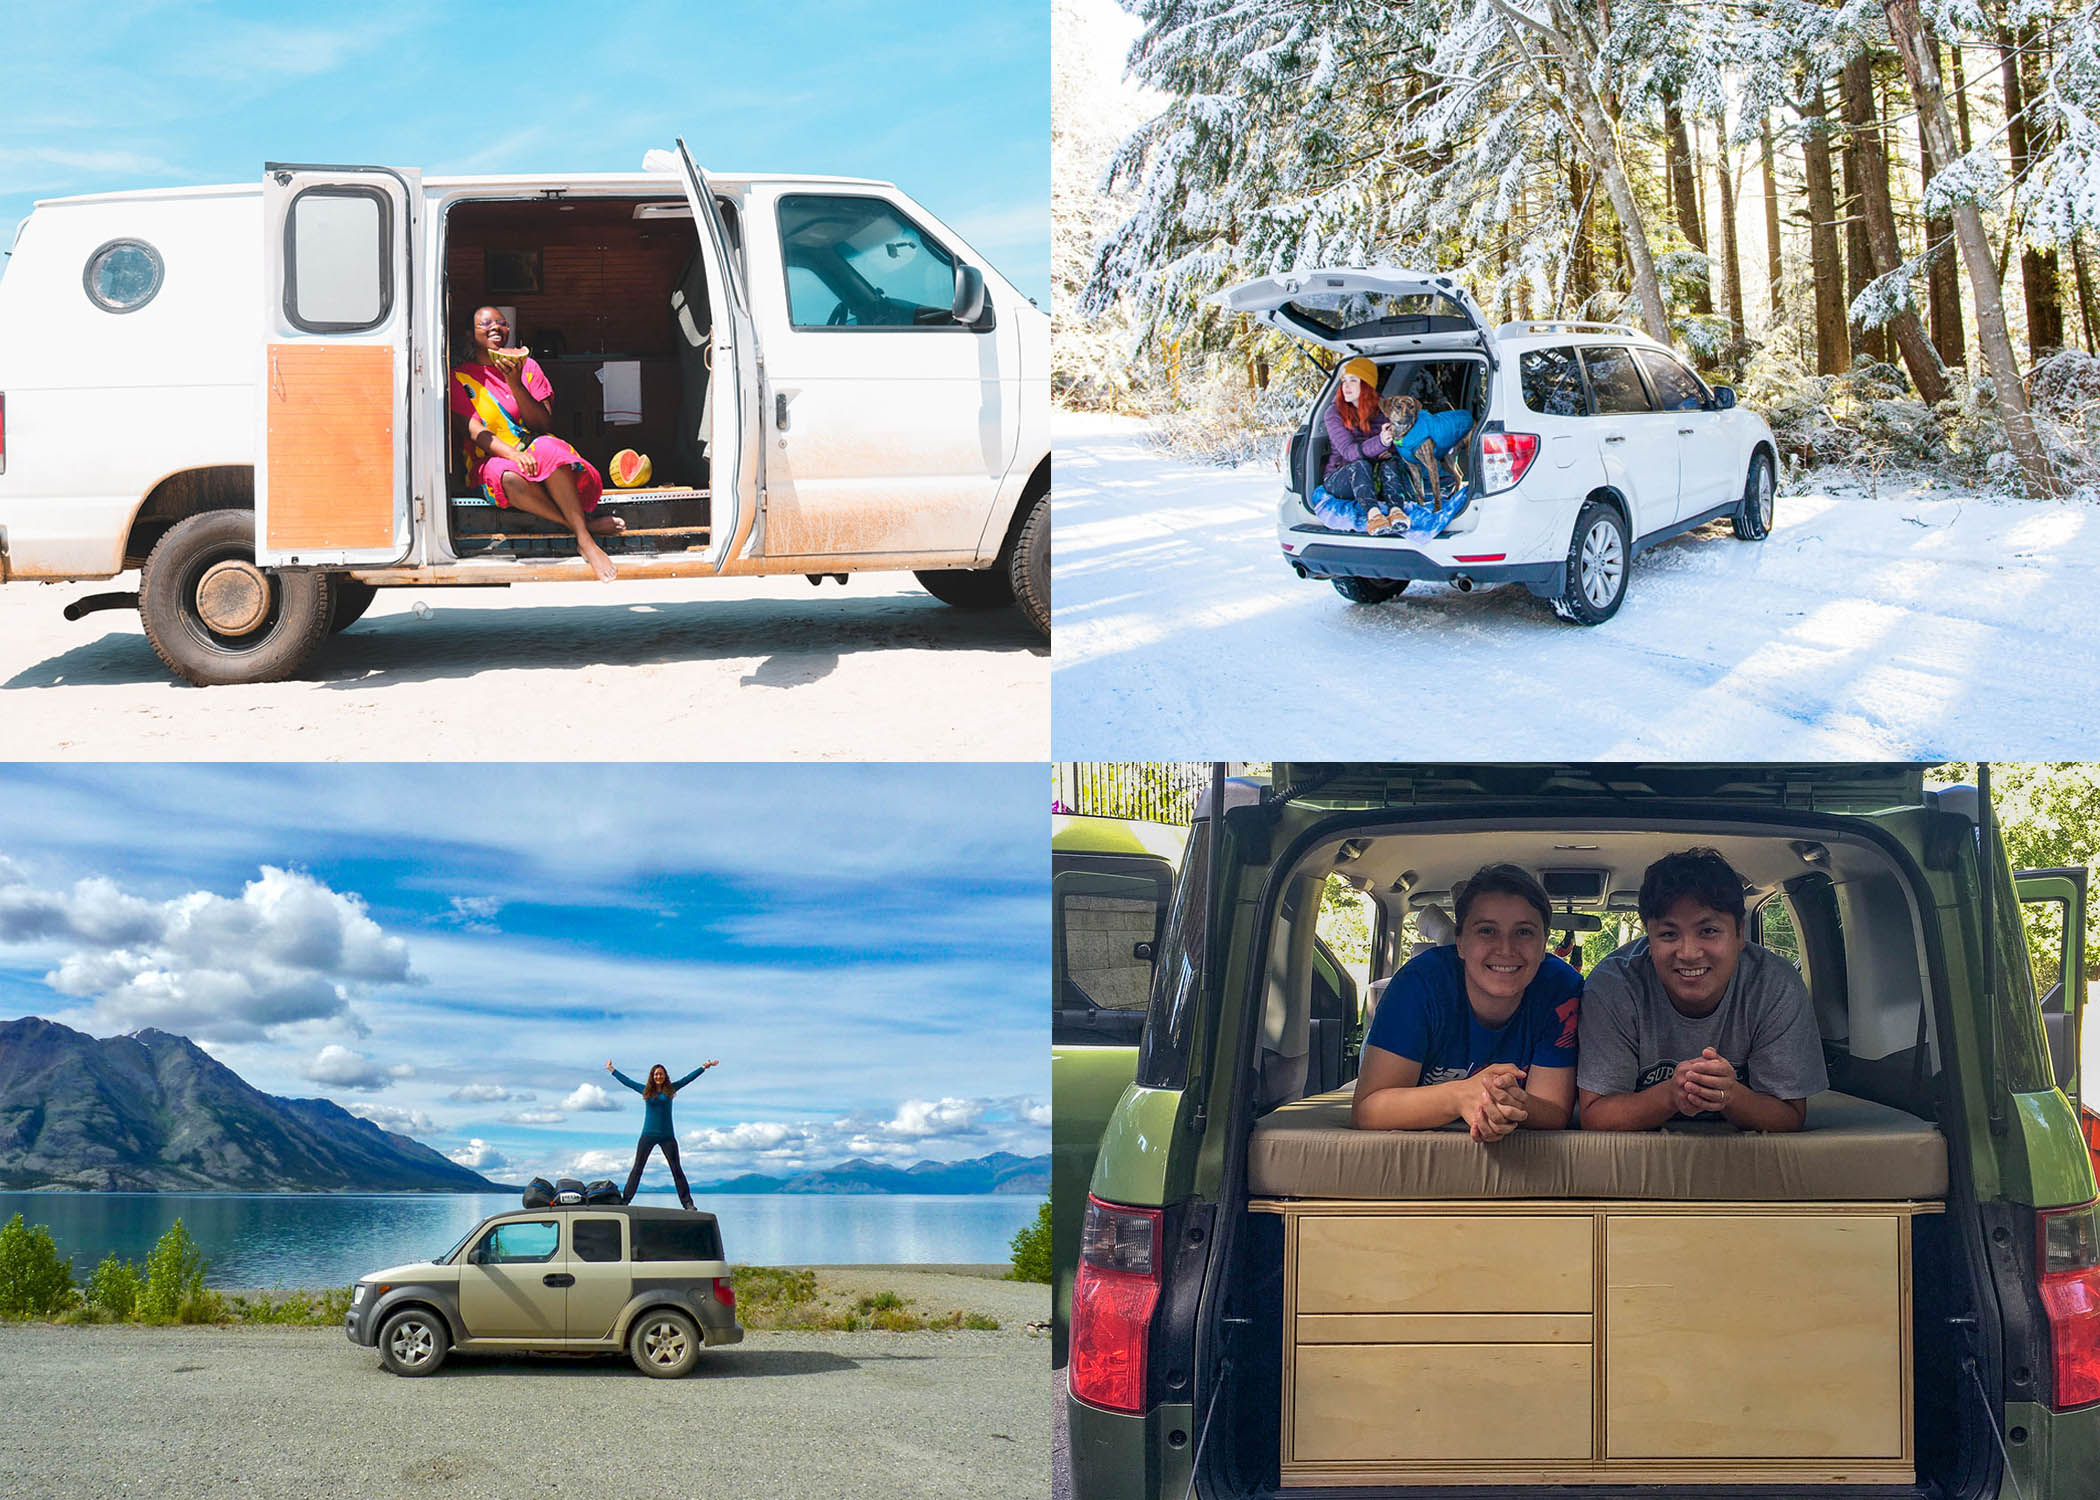 9 budget campers to inspire overland adventures for everyone two dusty travelers 9 budget campers to inspire overland